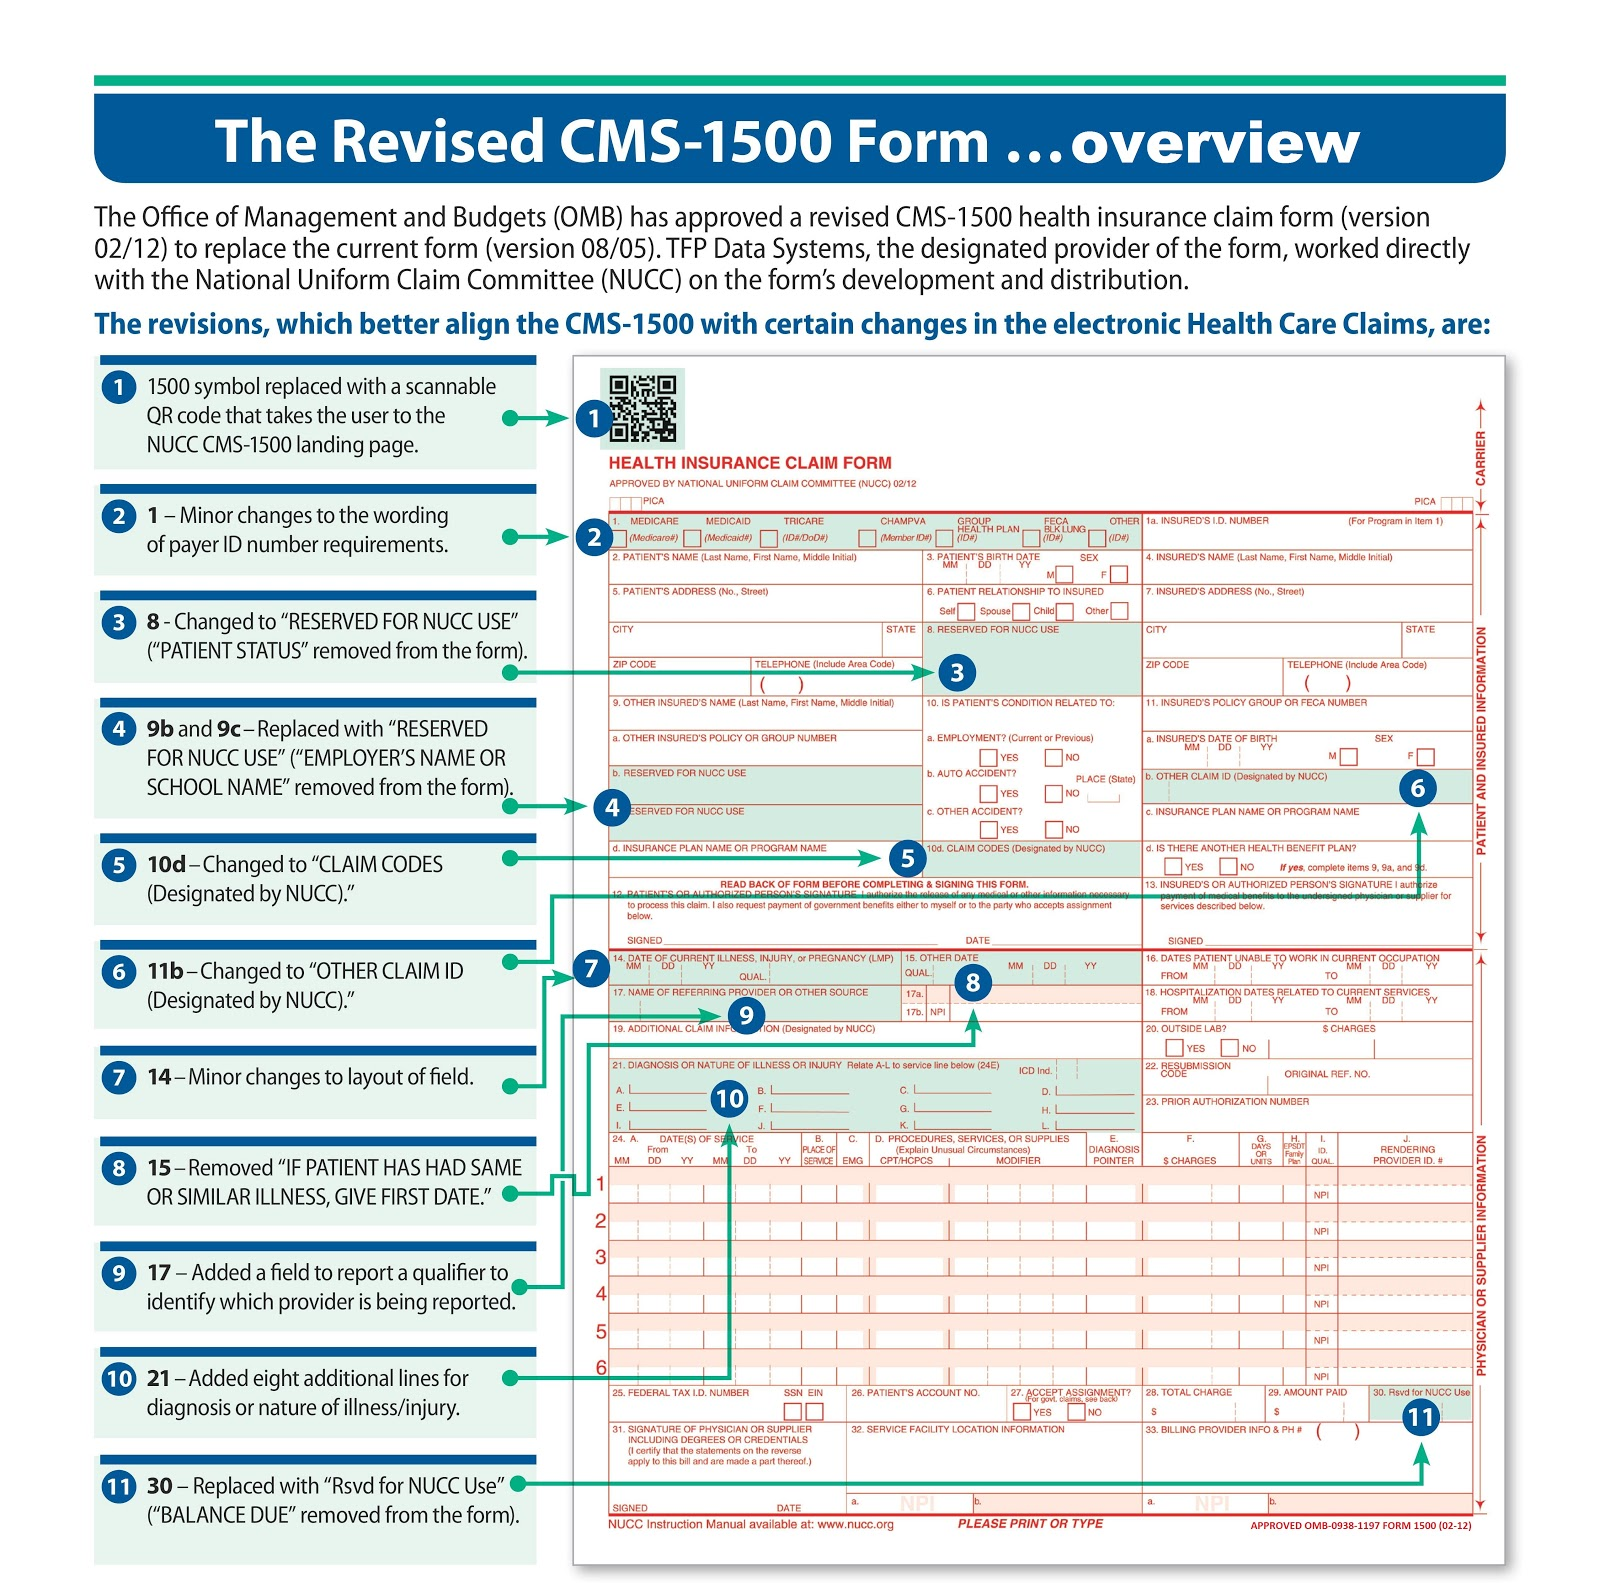 New HCFA for 2014, Medical billing codings, Revision of CMS-1500 overview